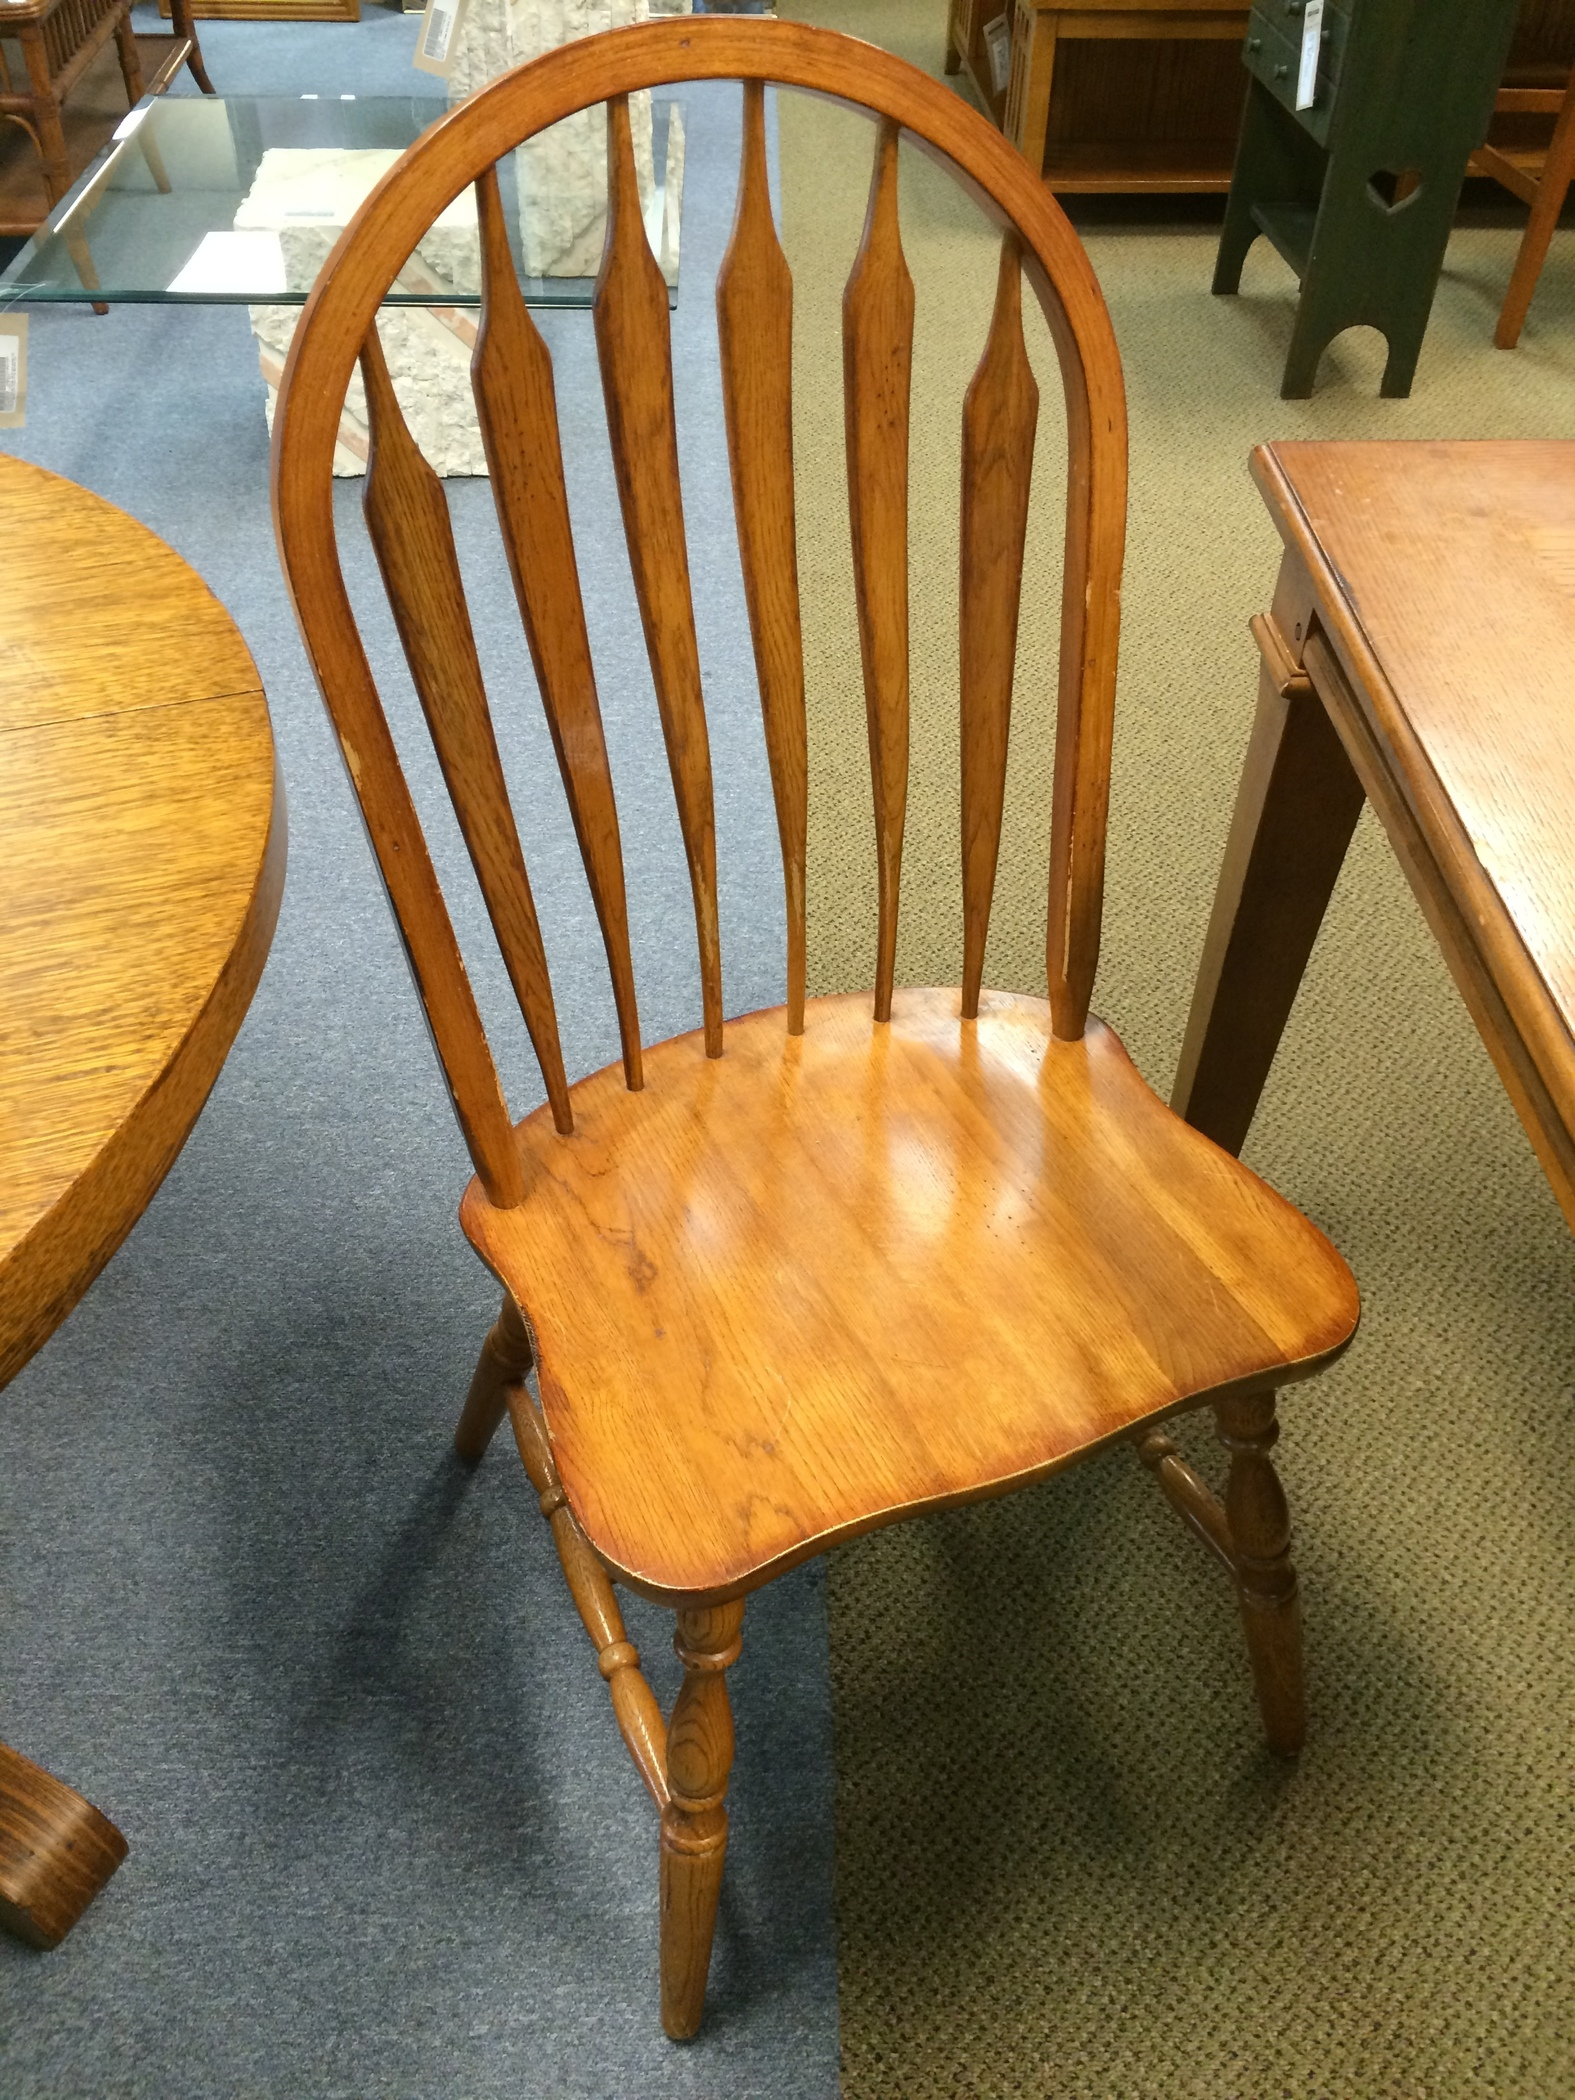 TABLE AND 4 CHAIRS Allegheny Furniture Consignment